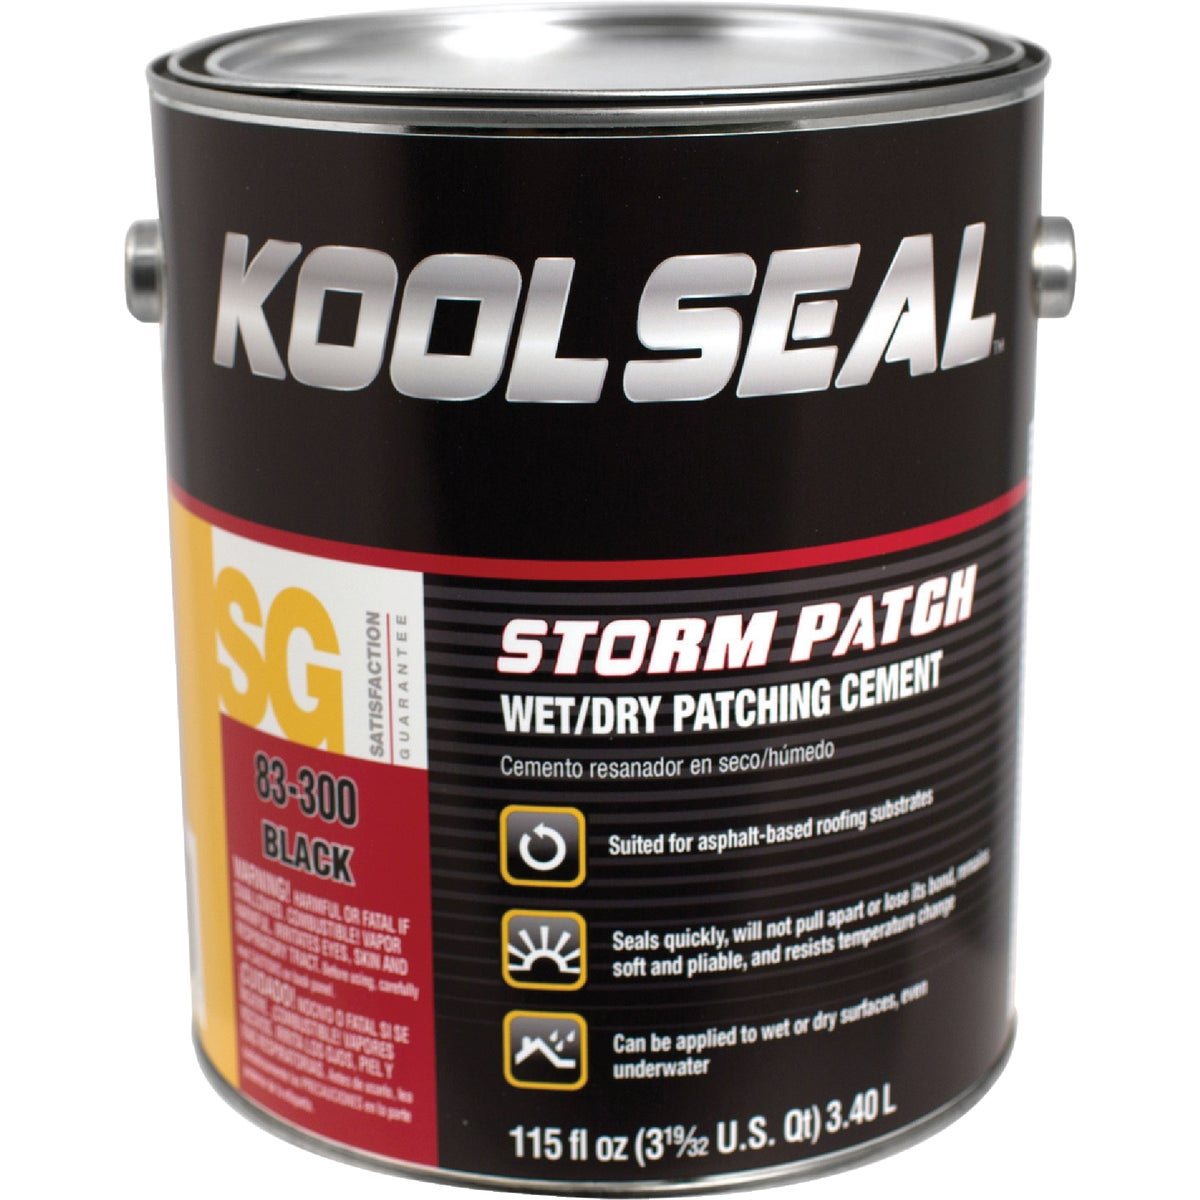 GAL ROOF PATCHING CEMENT - KST0000SP by Kool Seal